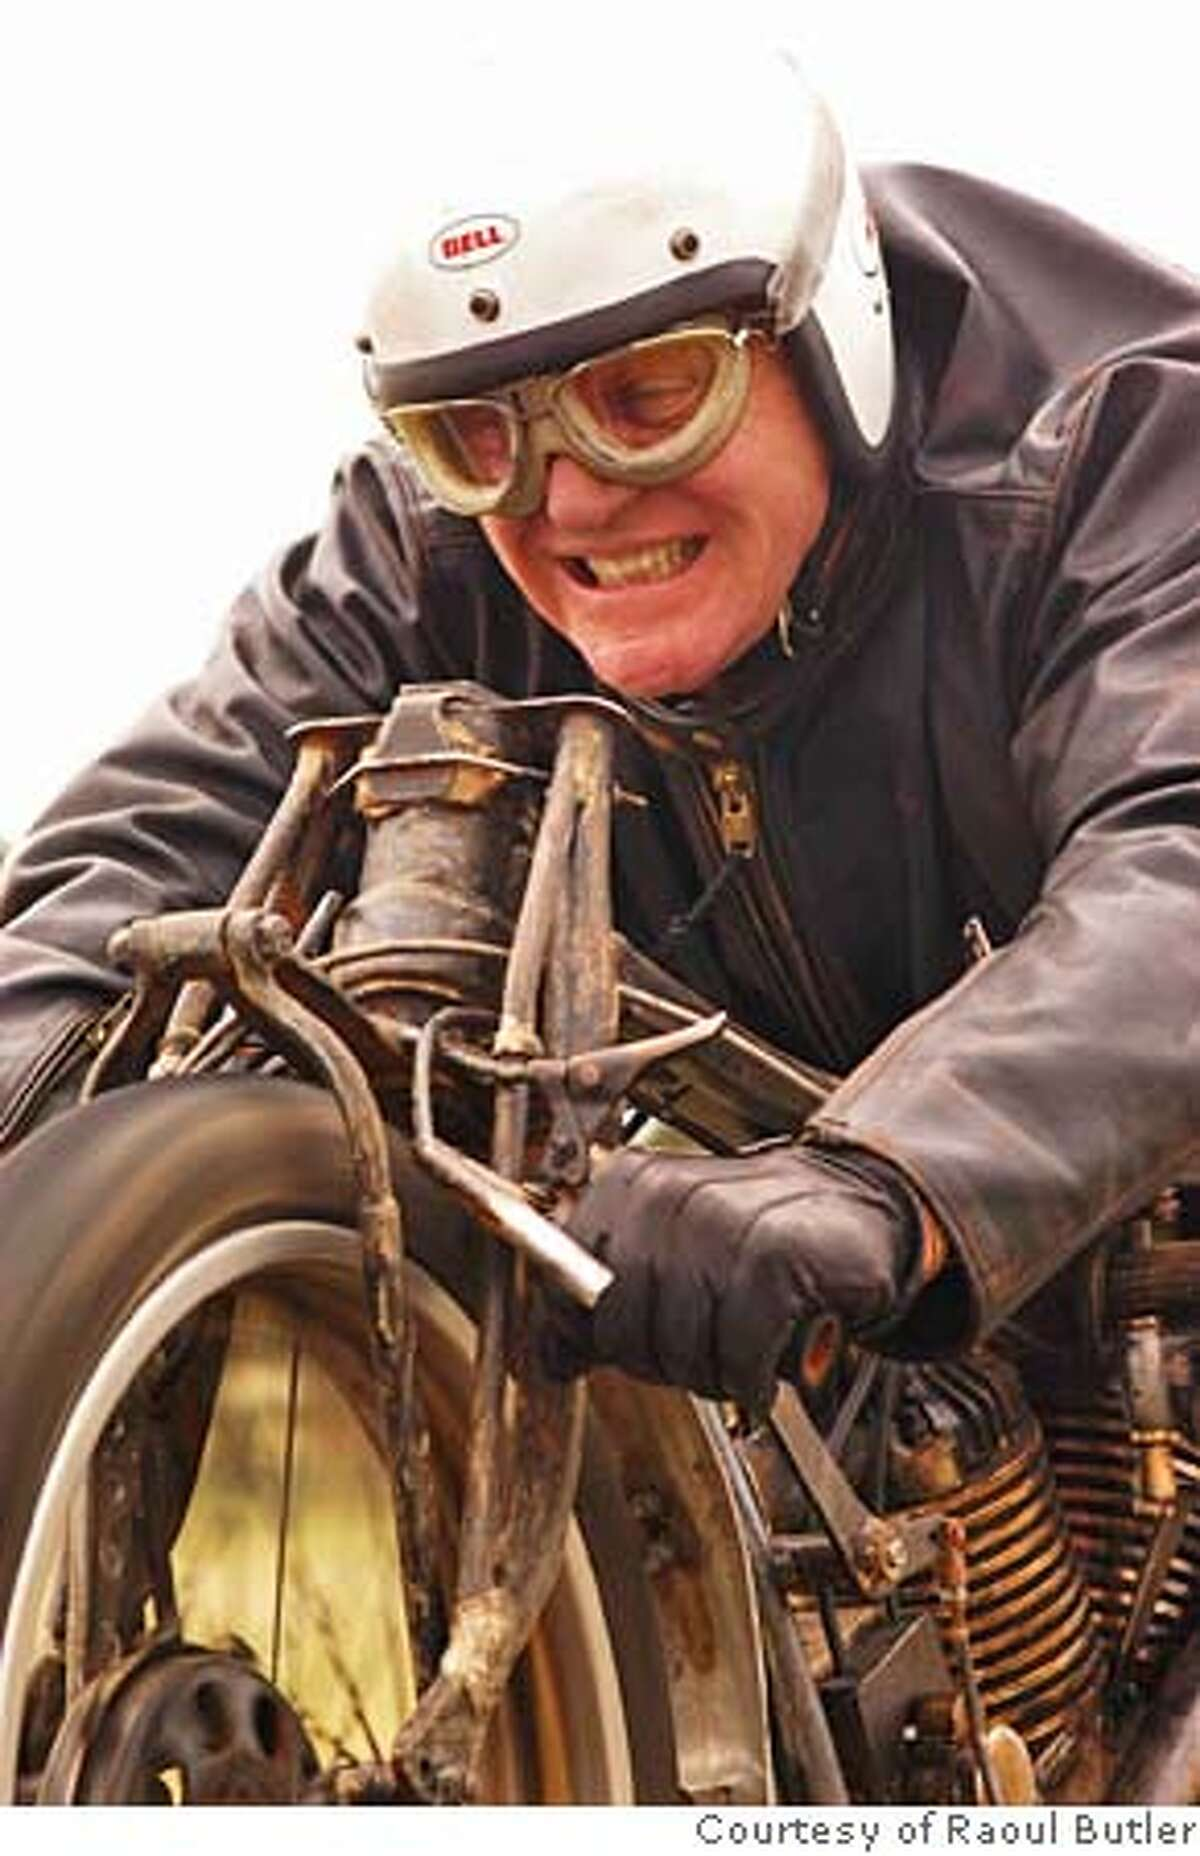 Burt Munro (Anthony Hopkins) on his modified Indian motorcycle in The World's Fastest Indian , a Magnolia Pictures release. Photo courtesy Raoul Butler.